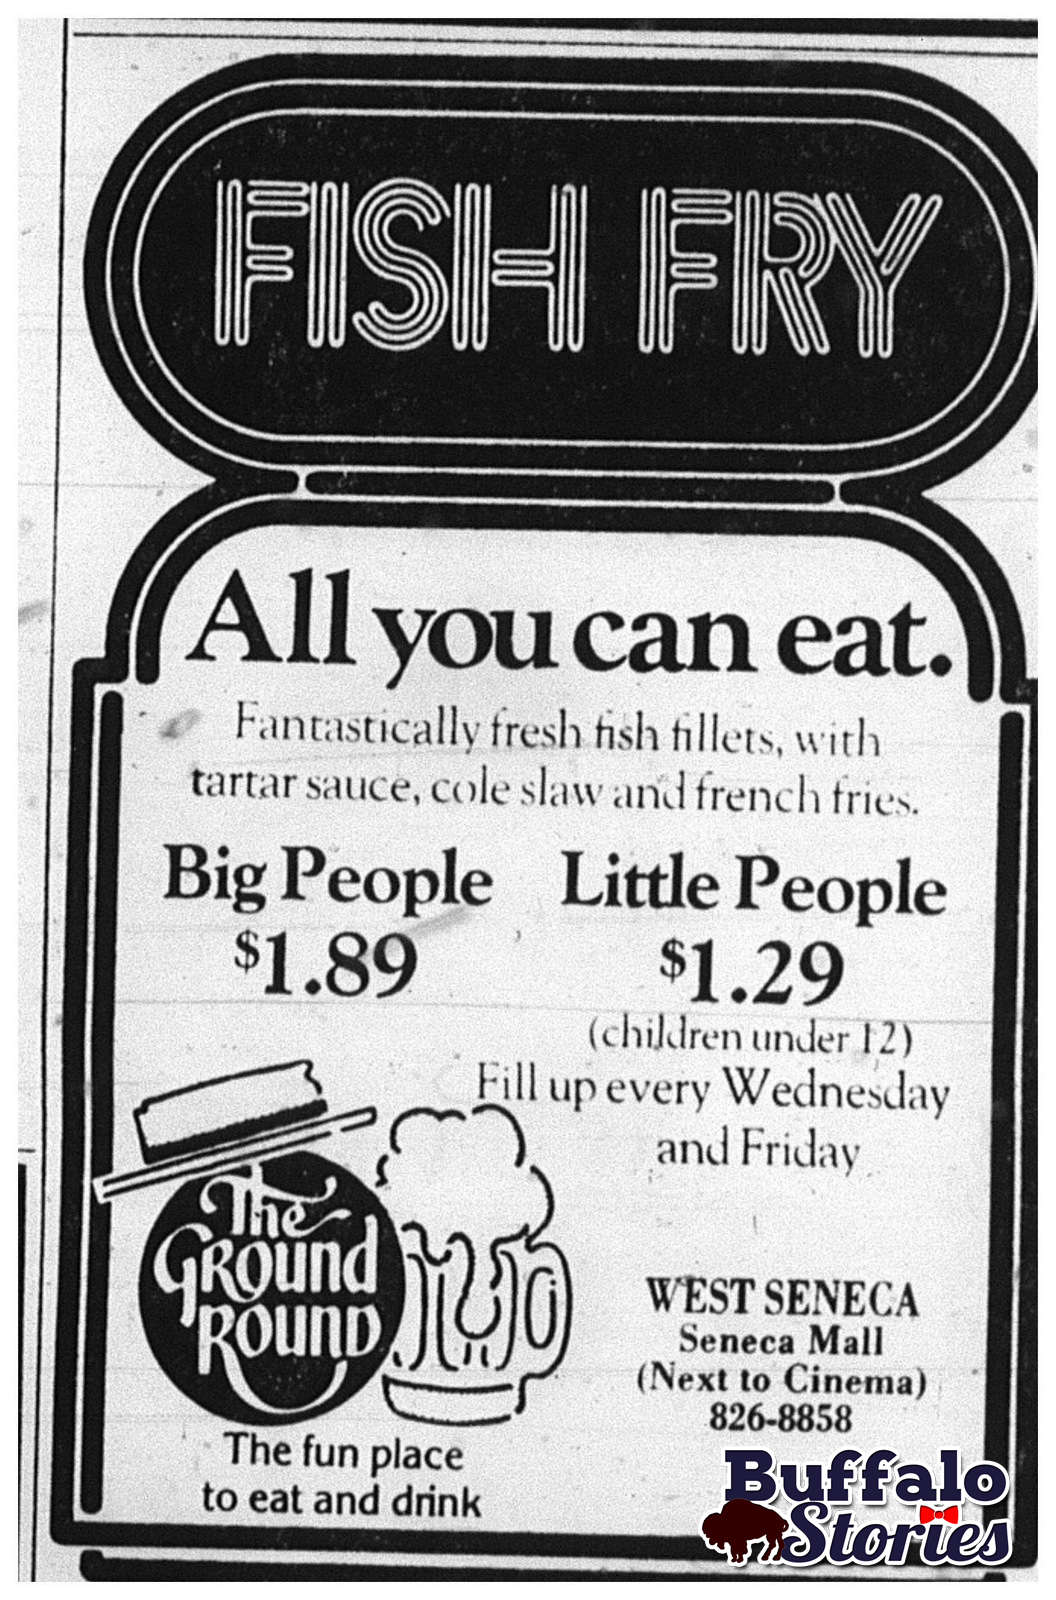 Ground round buffalo stories archives blog for All you can eat fish fry